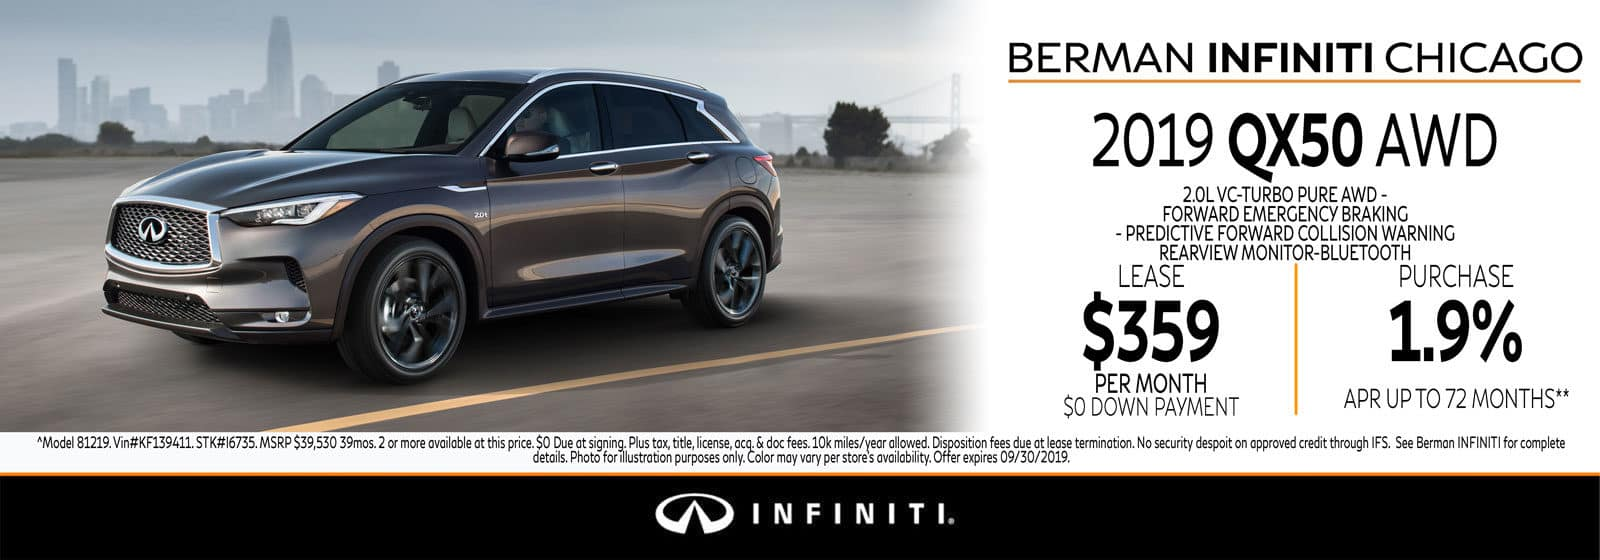 New 2019 INFINITI QX50 September offer at Berman INFINITI Chicago!